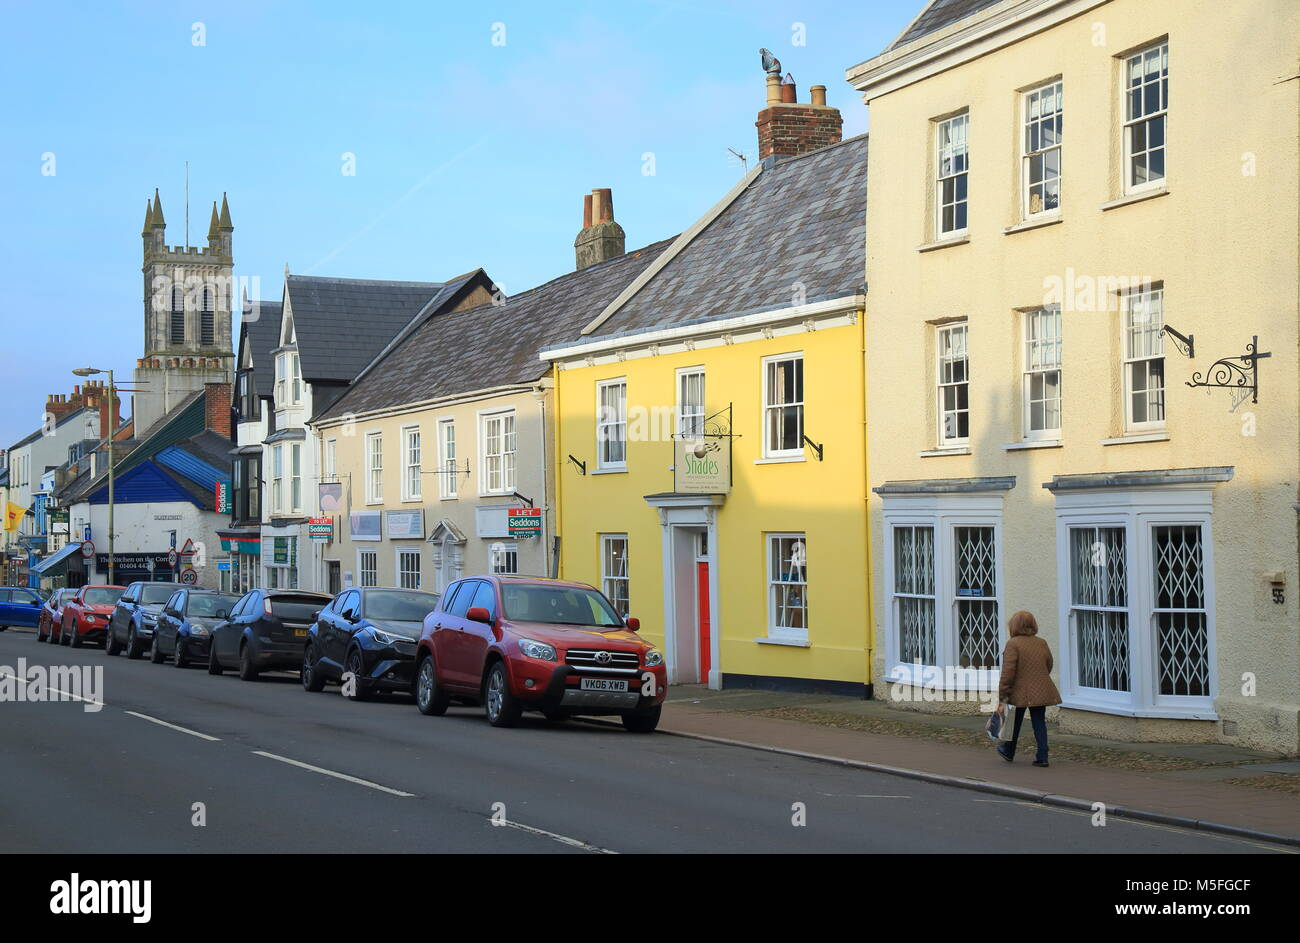 Market town of Honiton in East Devon famous by antique shops Stock Photo